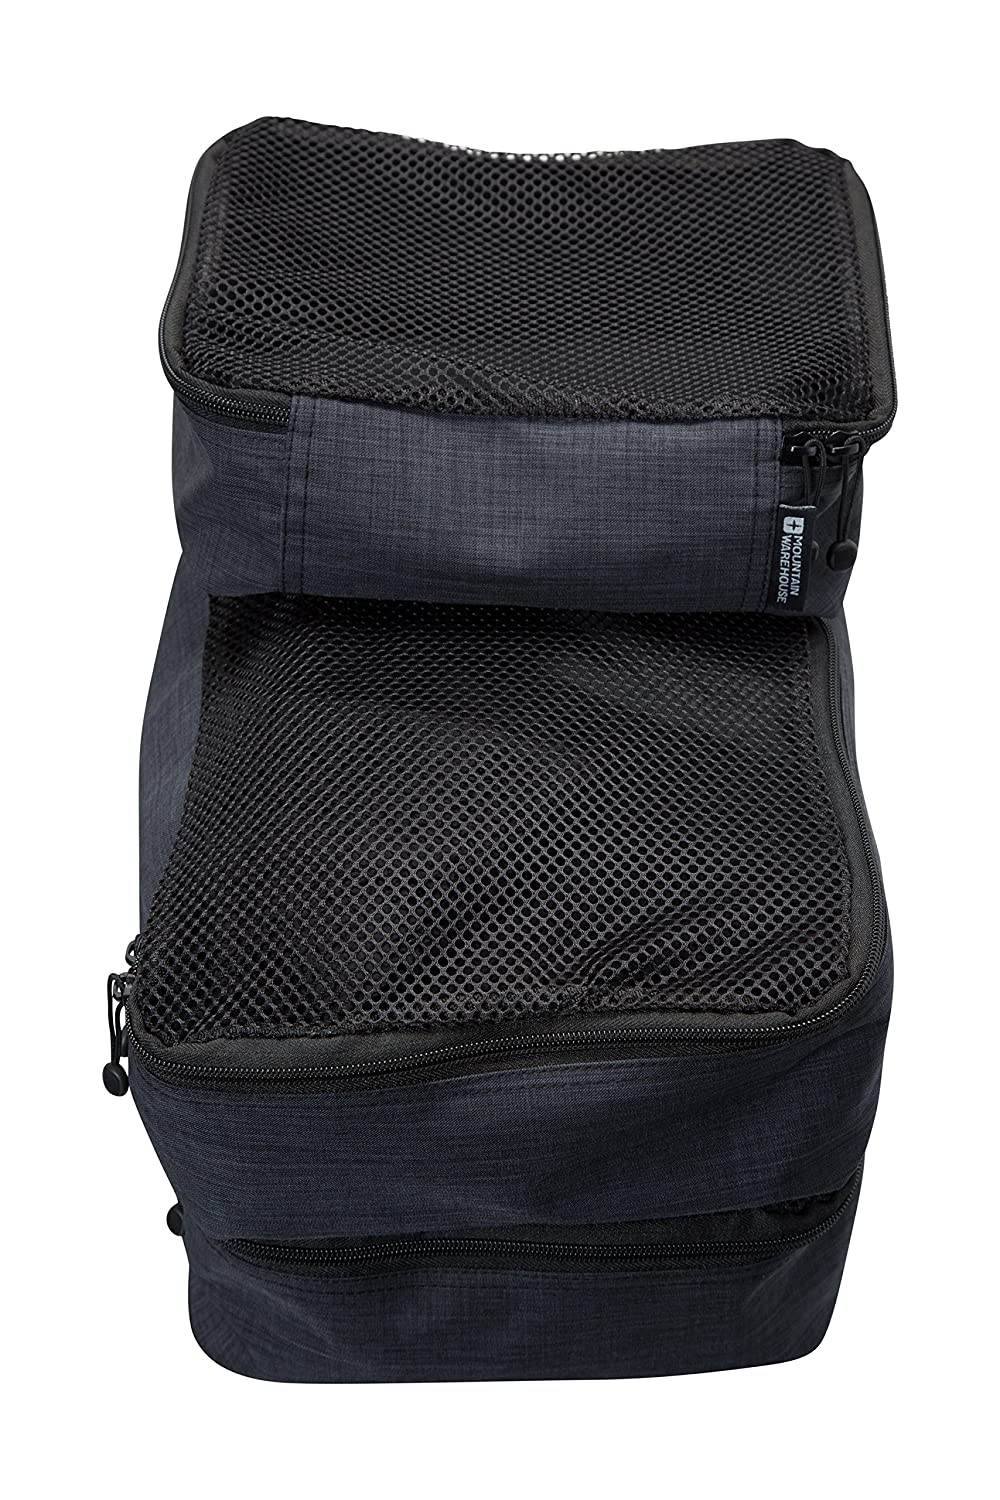 Mountain Warehouse Travel Organiser Home /& Camping Set of 3 Packing Cubes Zipped Compartments Storage Bags with Easy Fit in Travel Bag Great for Travelling